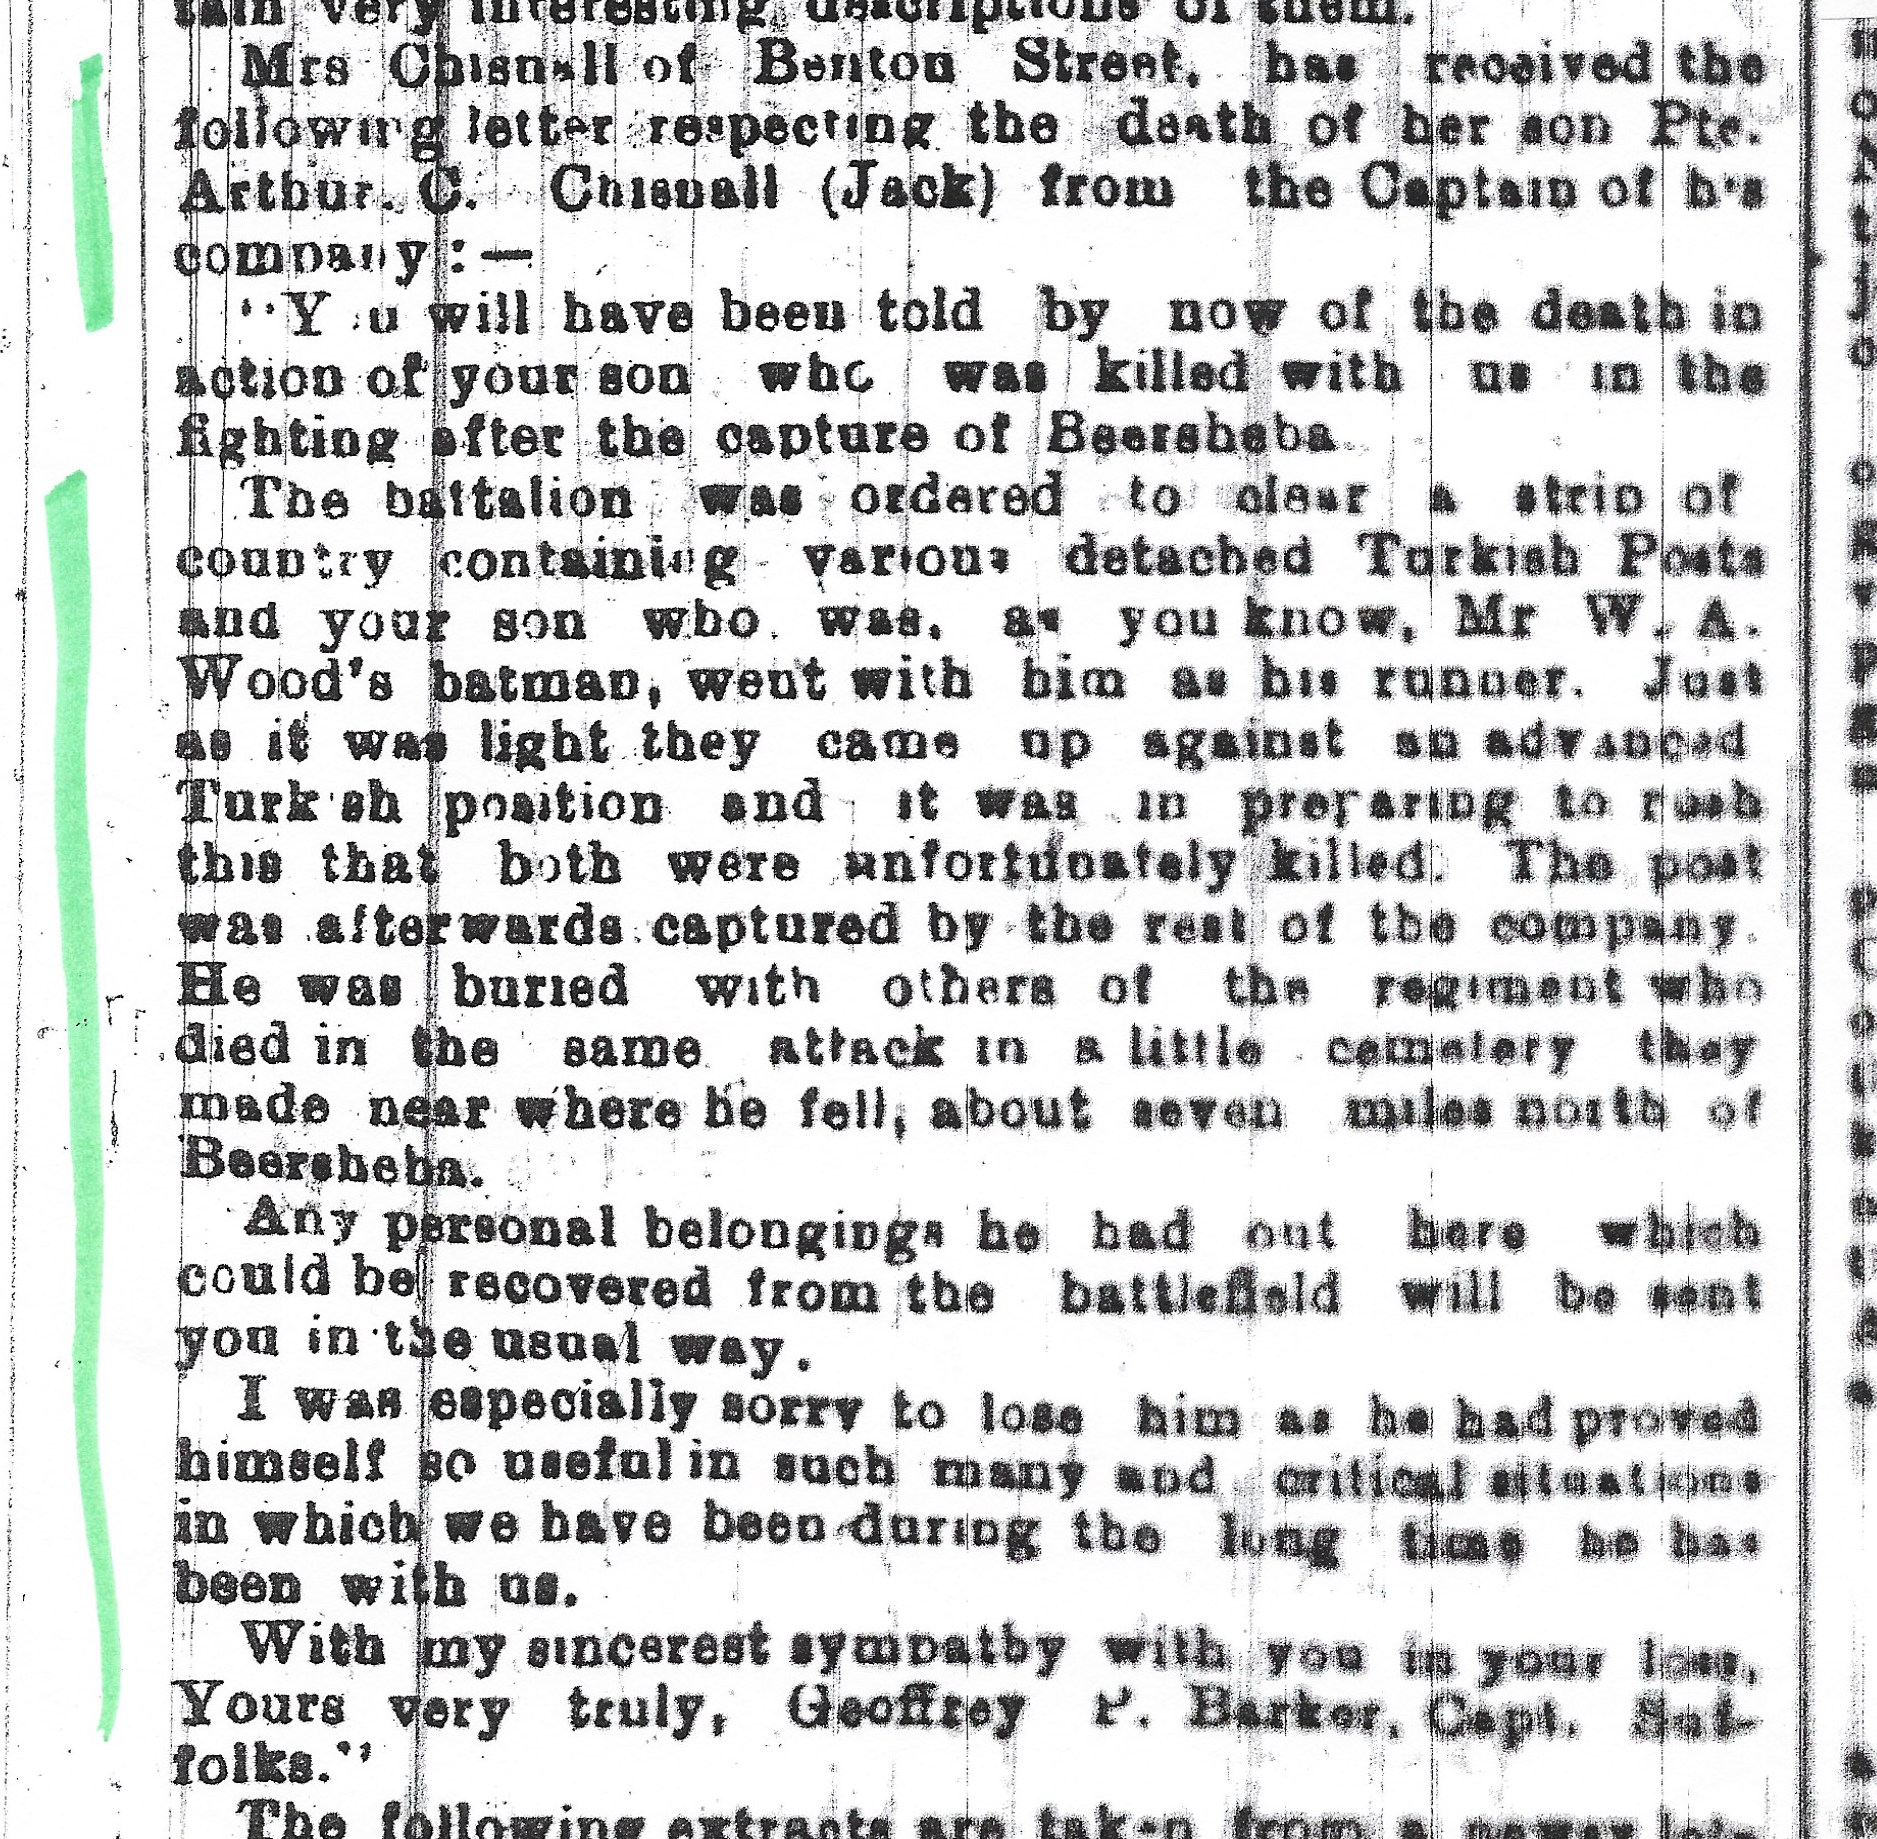 Obituary from 2 January 1918 edition of the Suffolk Free Press